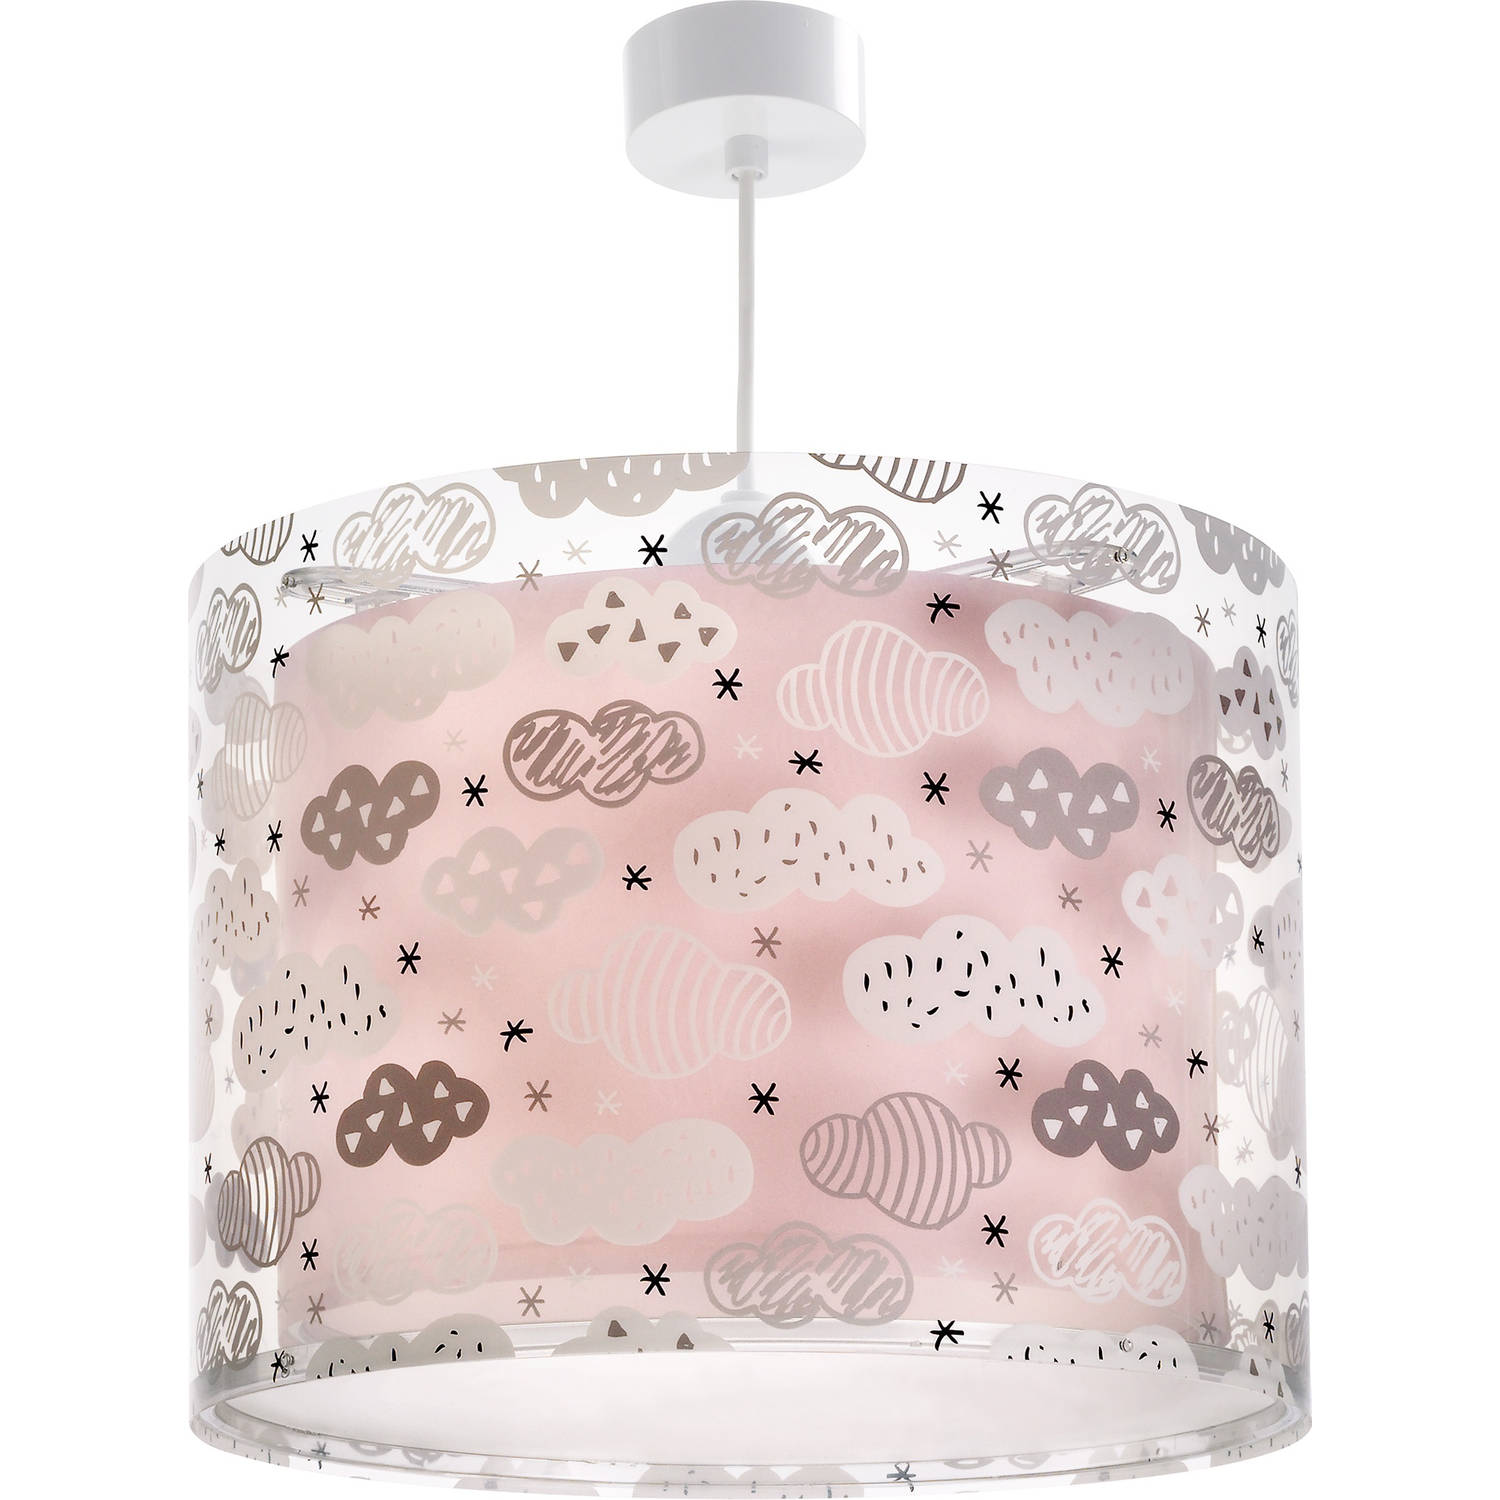 Dalber hanglamp Clouds 33 cm roze